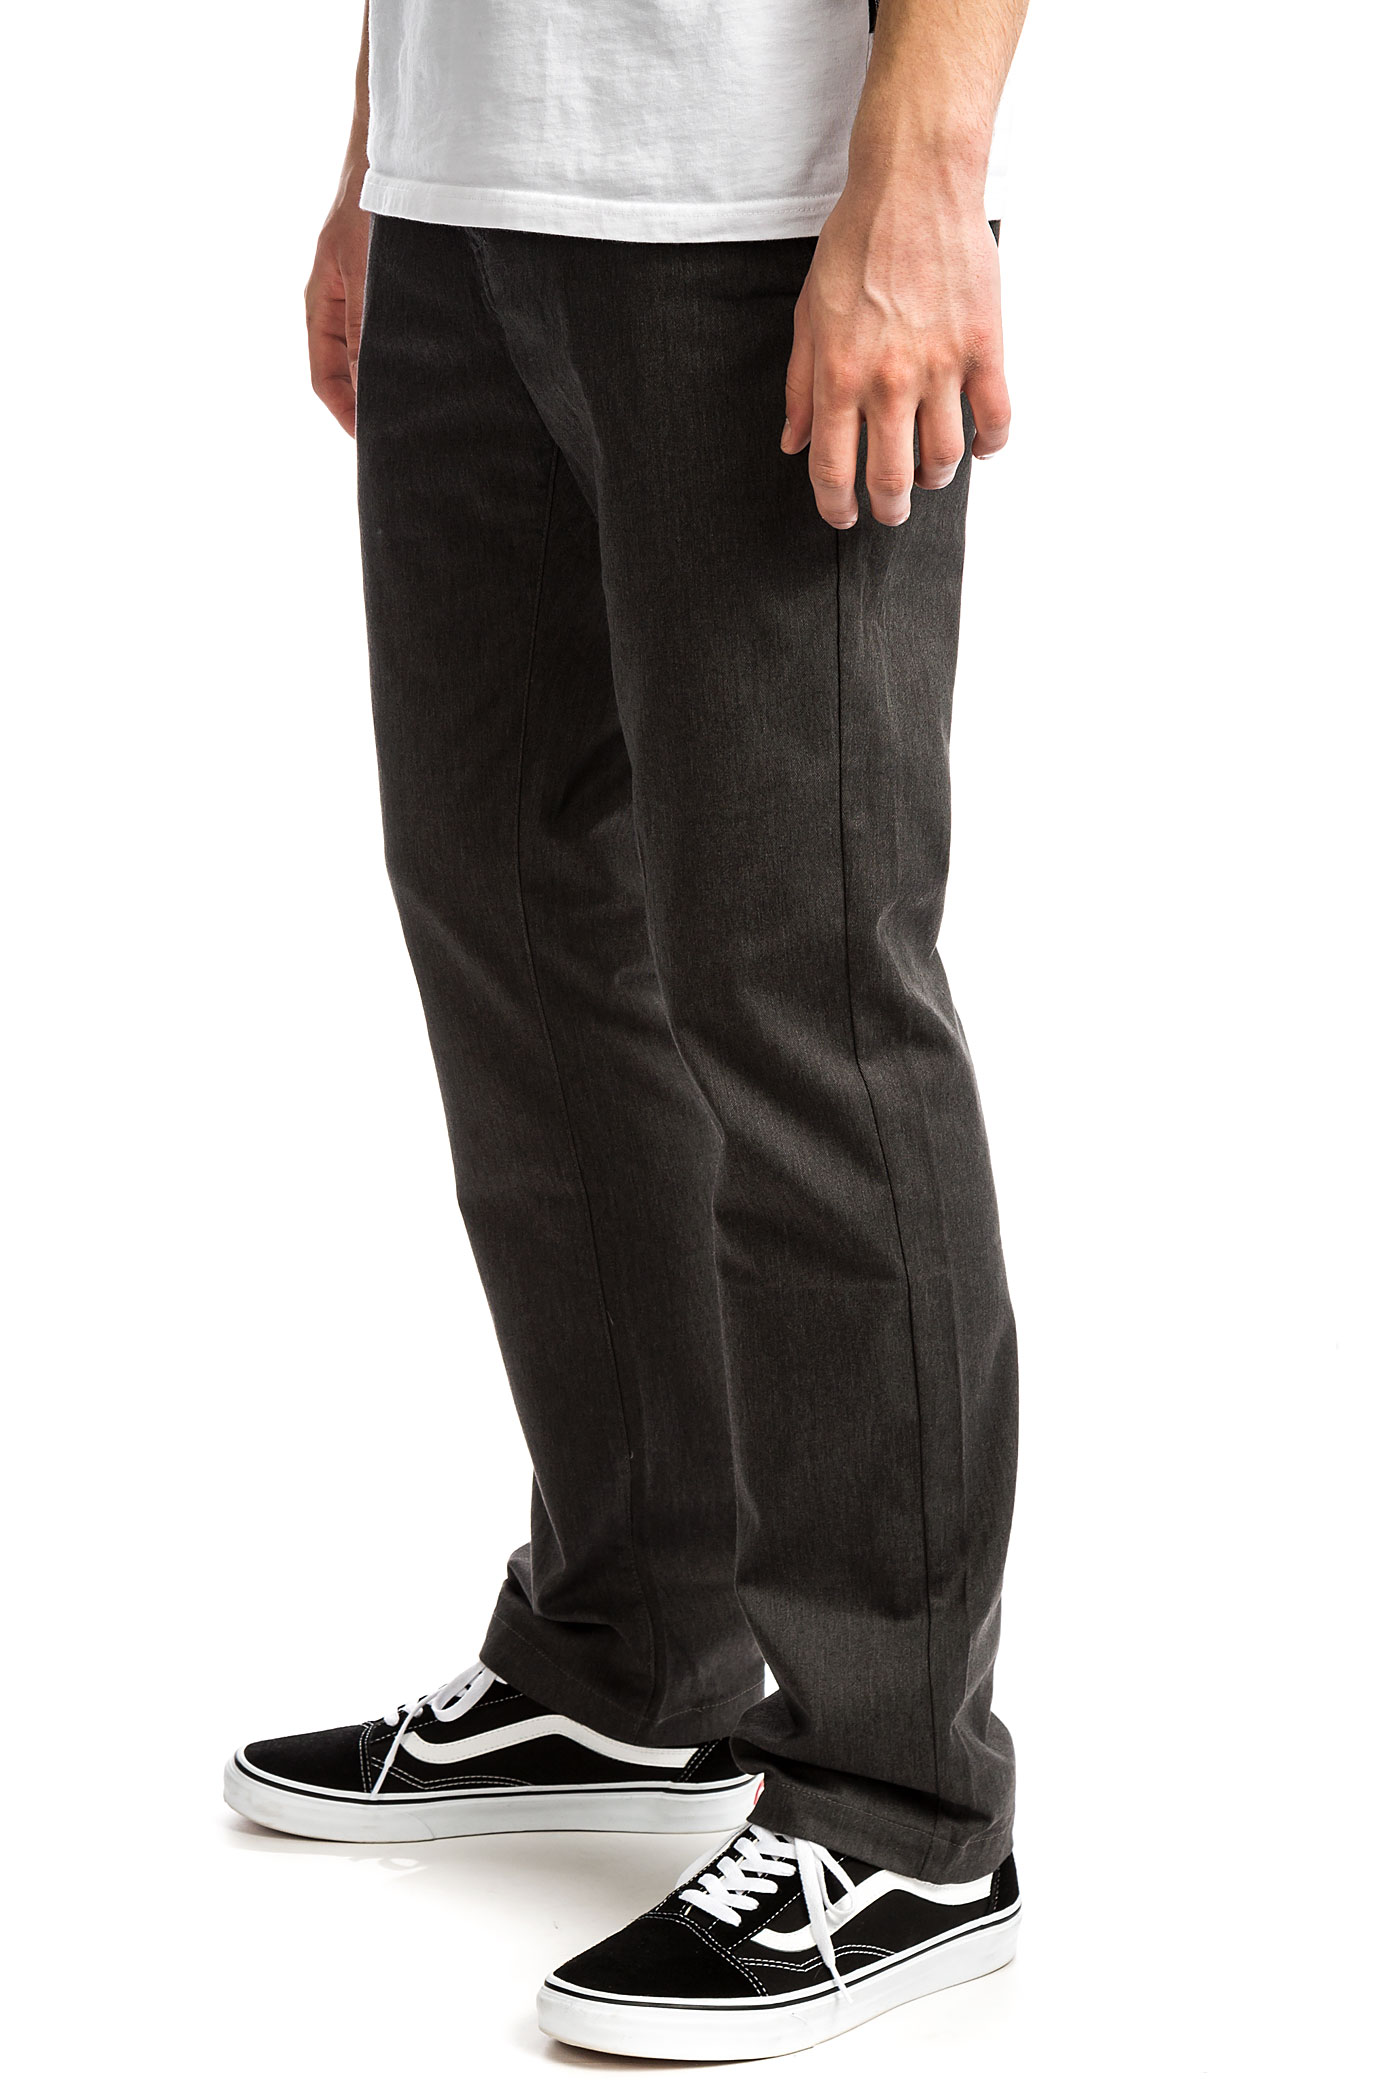 Frickin Heather Stretch Volcom Modern Pantalonscharcoal thCQsrdx